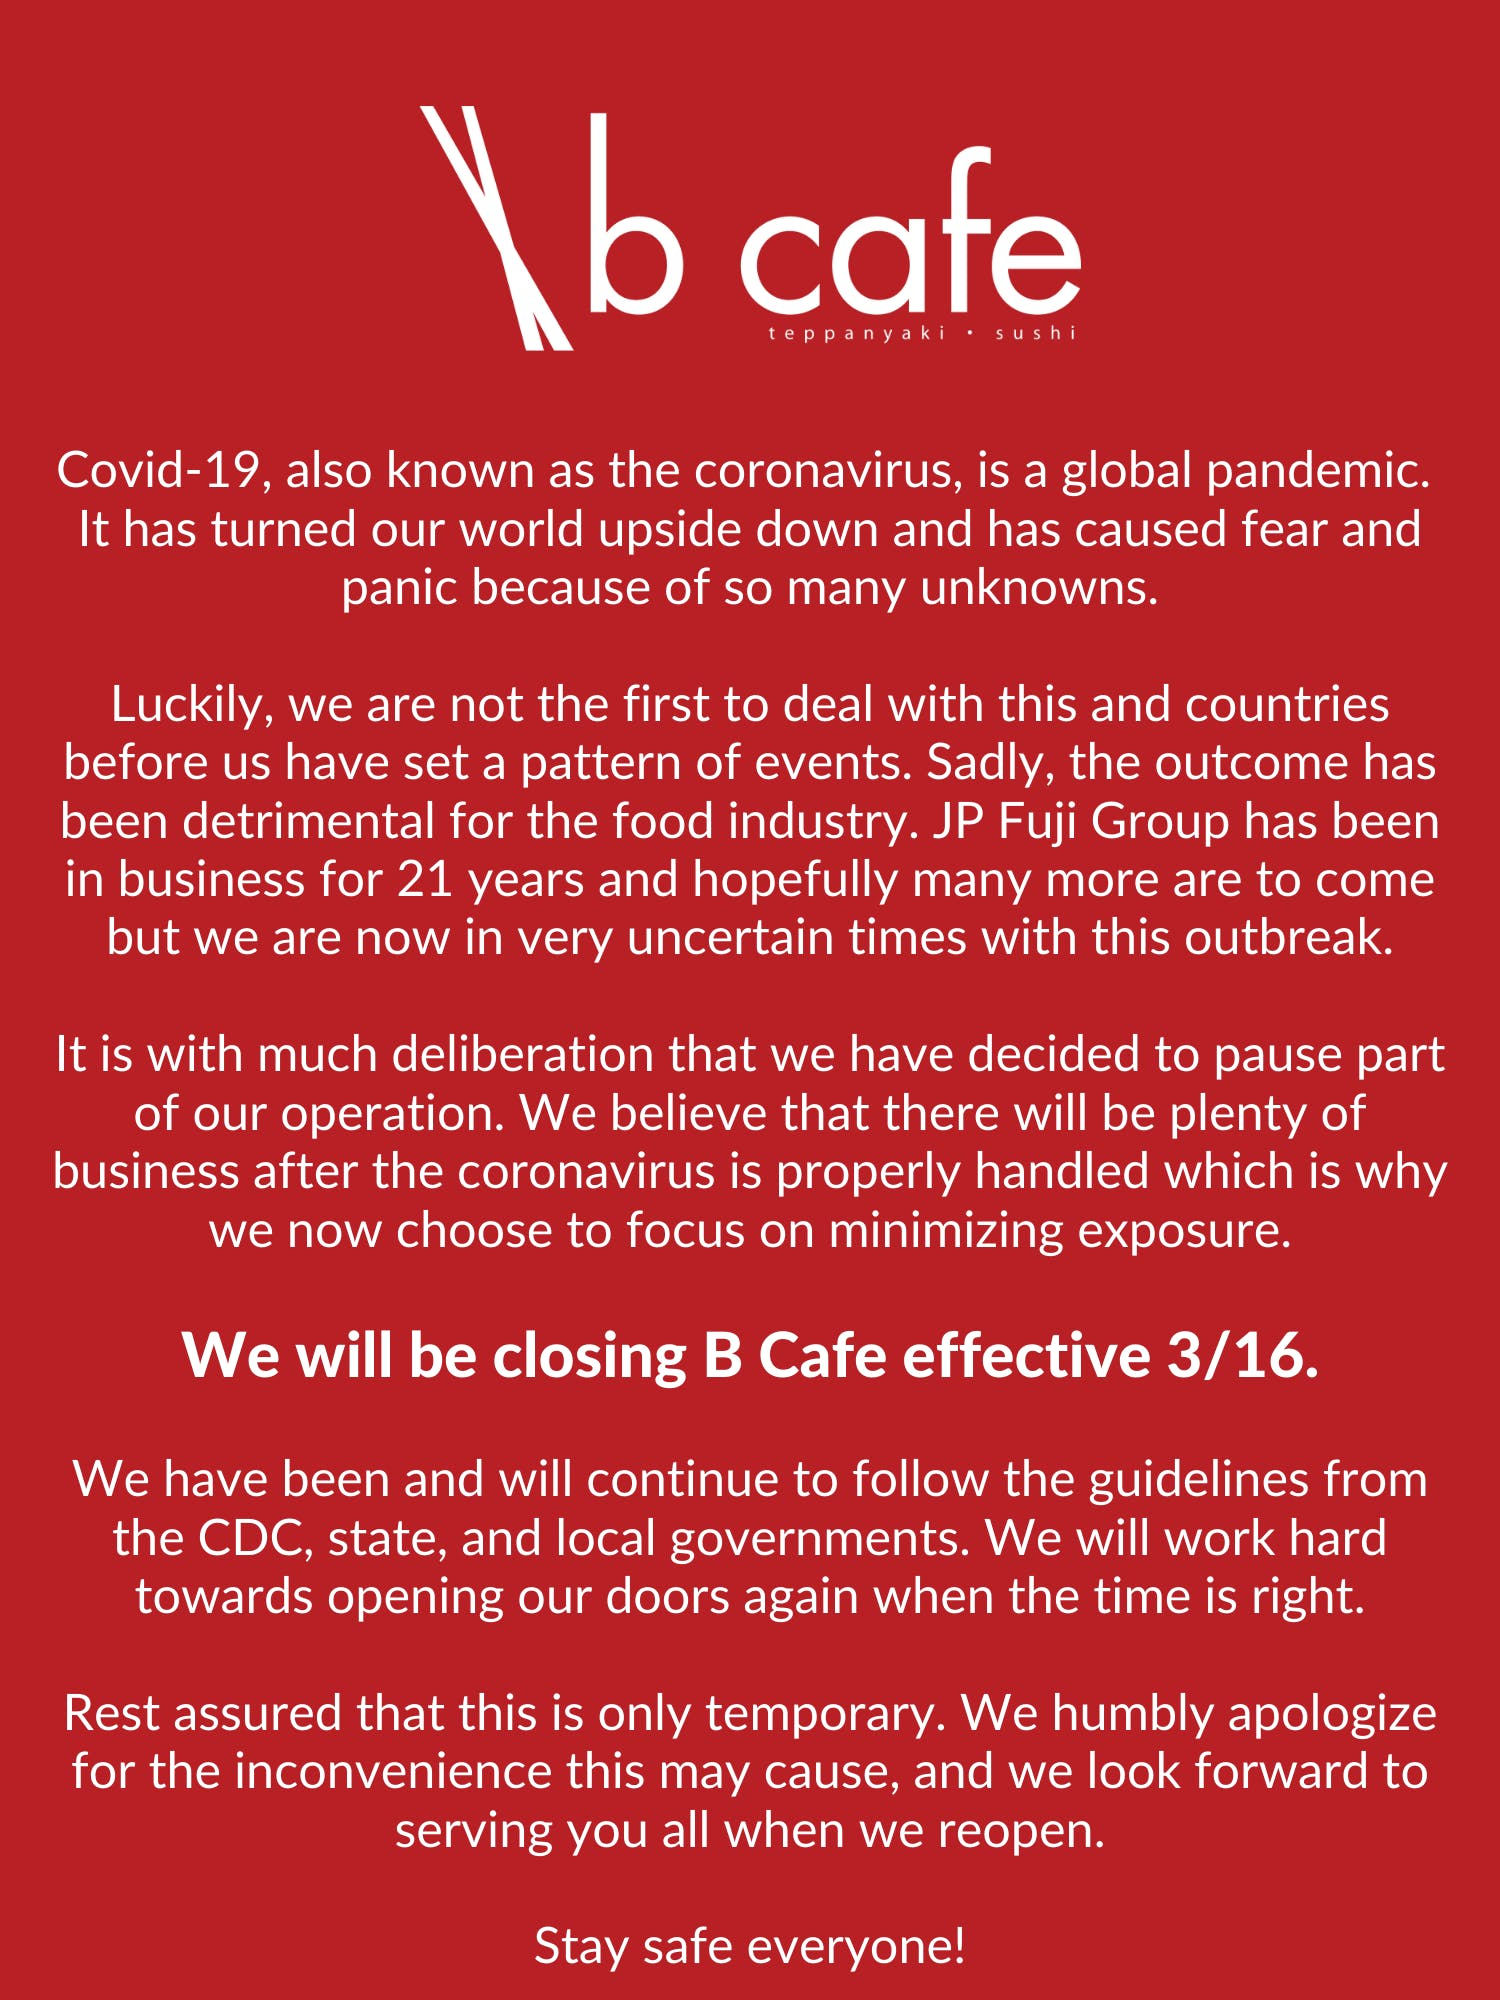 B Cafe will be closed due to the Coronavirus pandemic. Stay safe everyone!